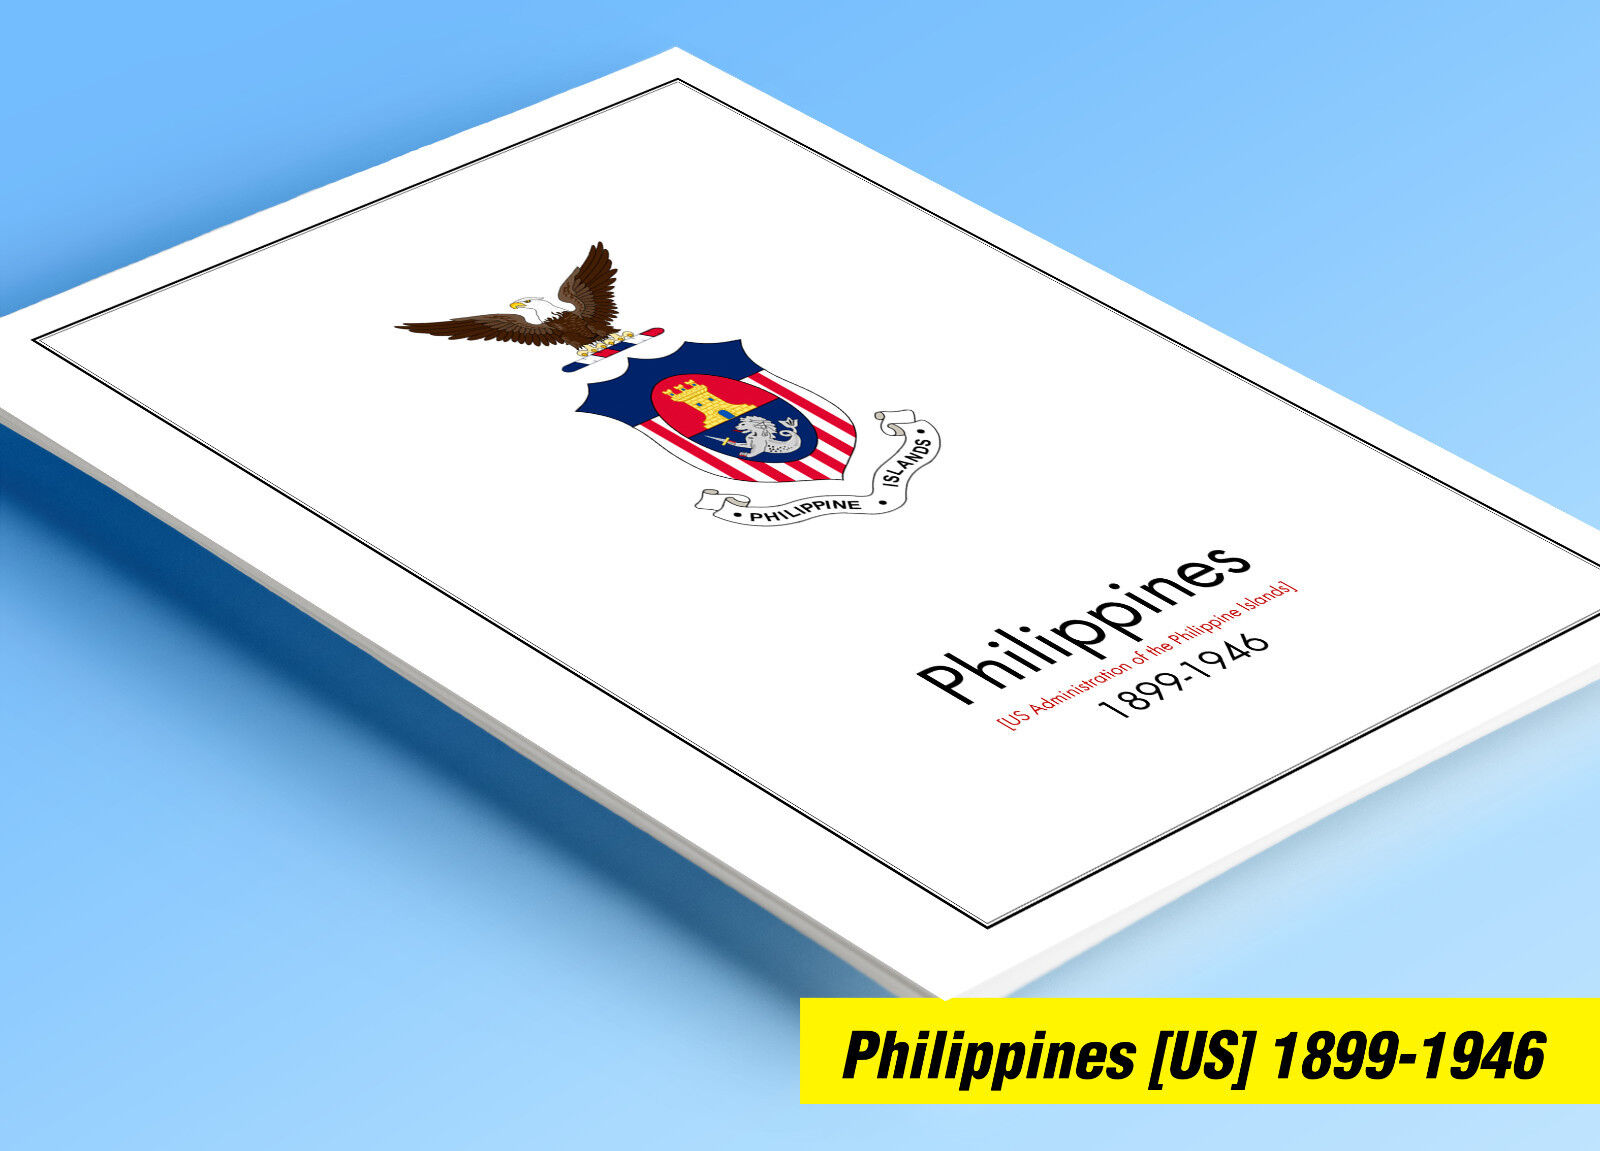 COLOR PRINTED PHILIPPINES [US+JP] 1899-1946 STAMP ALBUM PAGES (60 illust. pages)